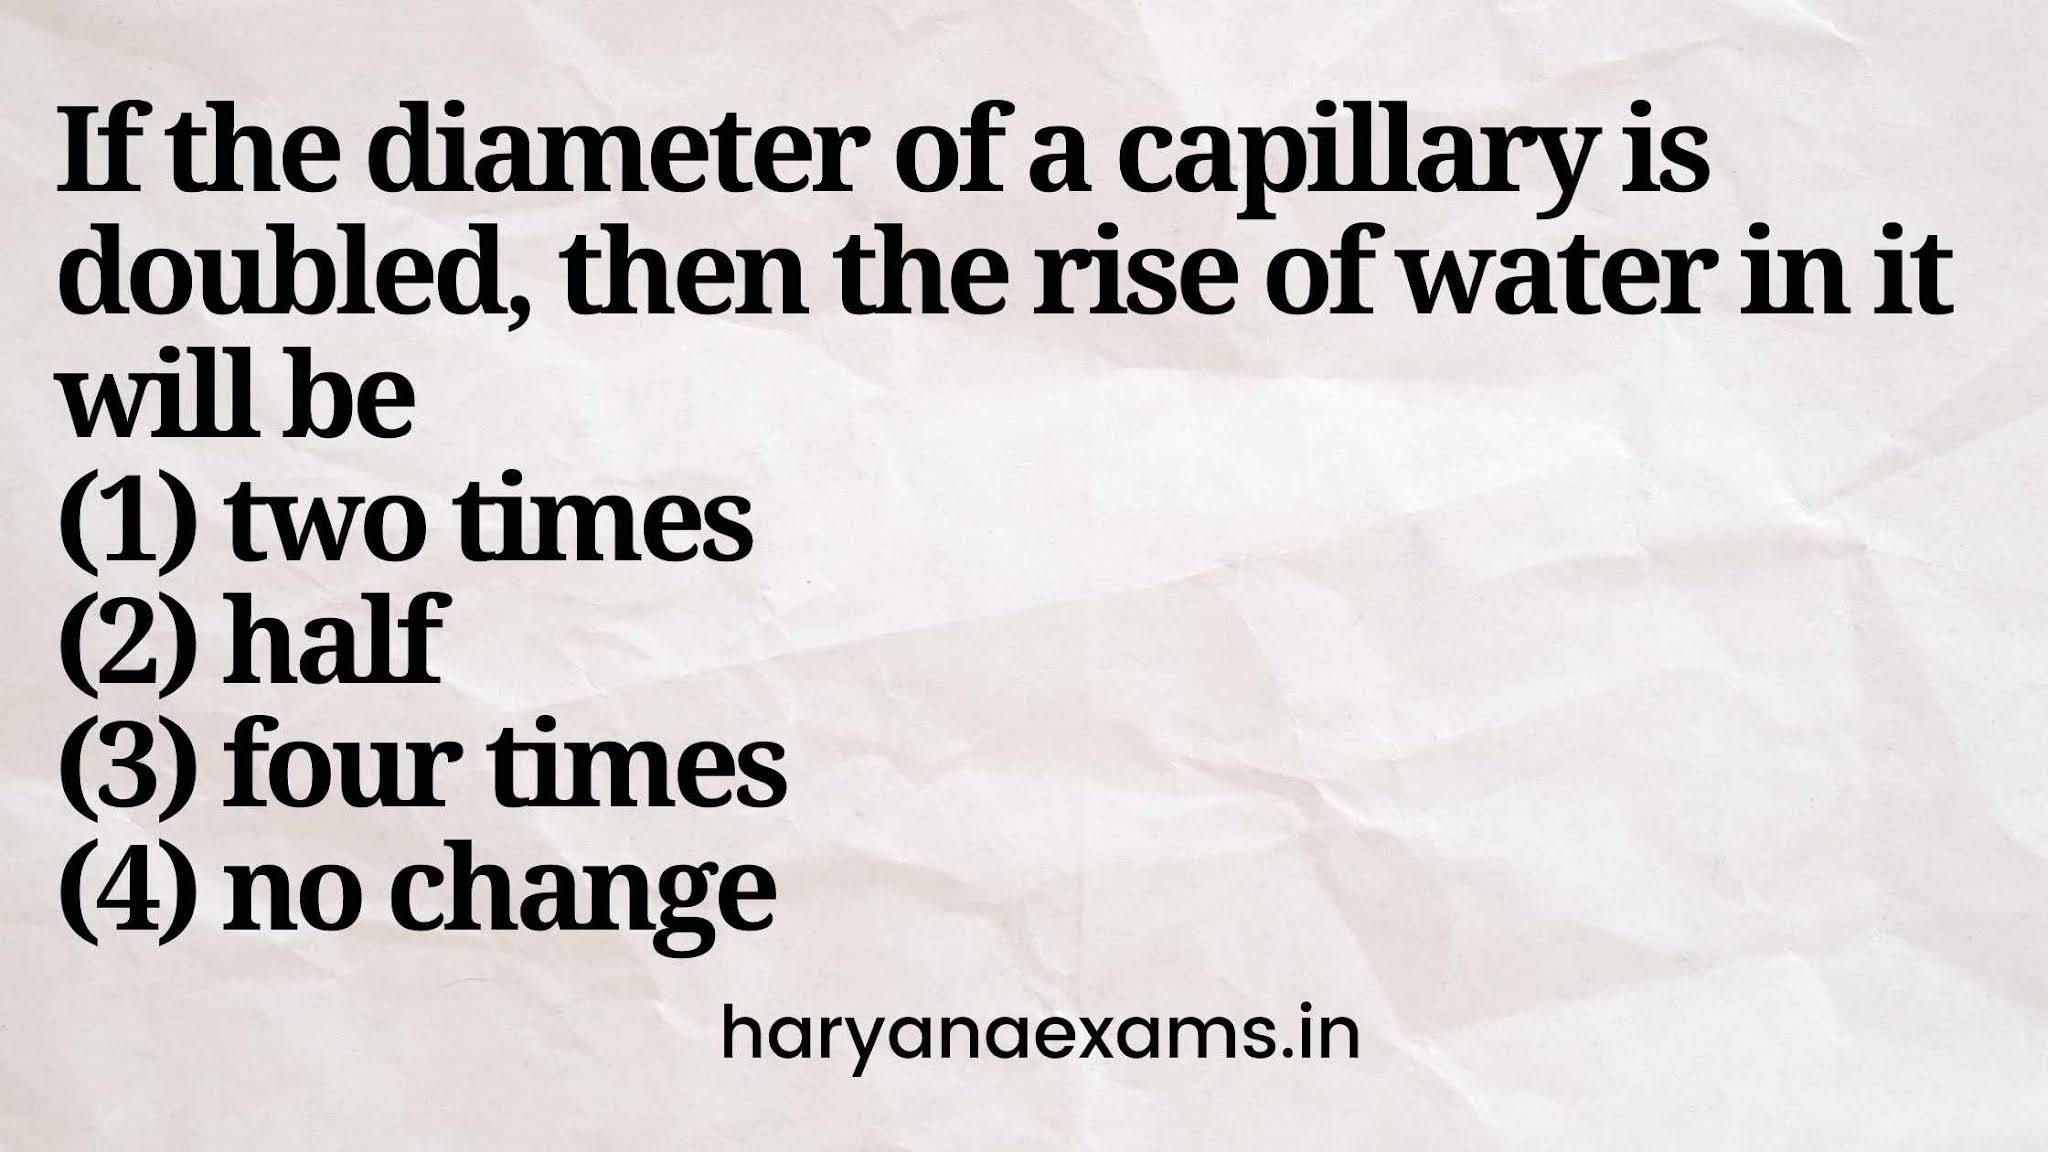 If the diameter of a capillary is doubled, then the rise of water in it will be   (1) two times   (2) half   (3) four times   (4) no change